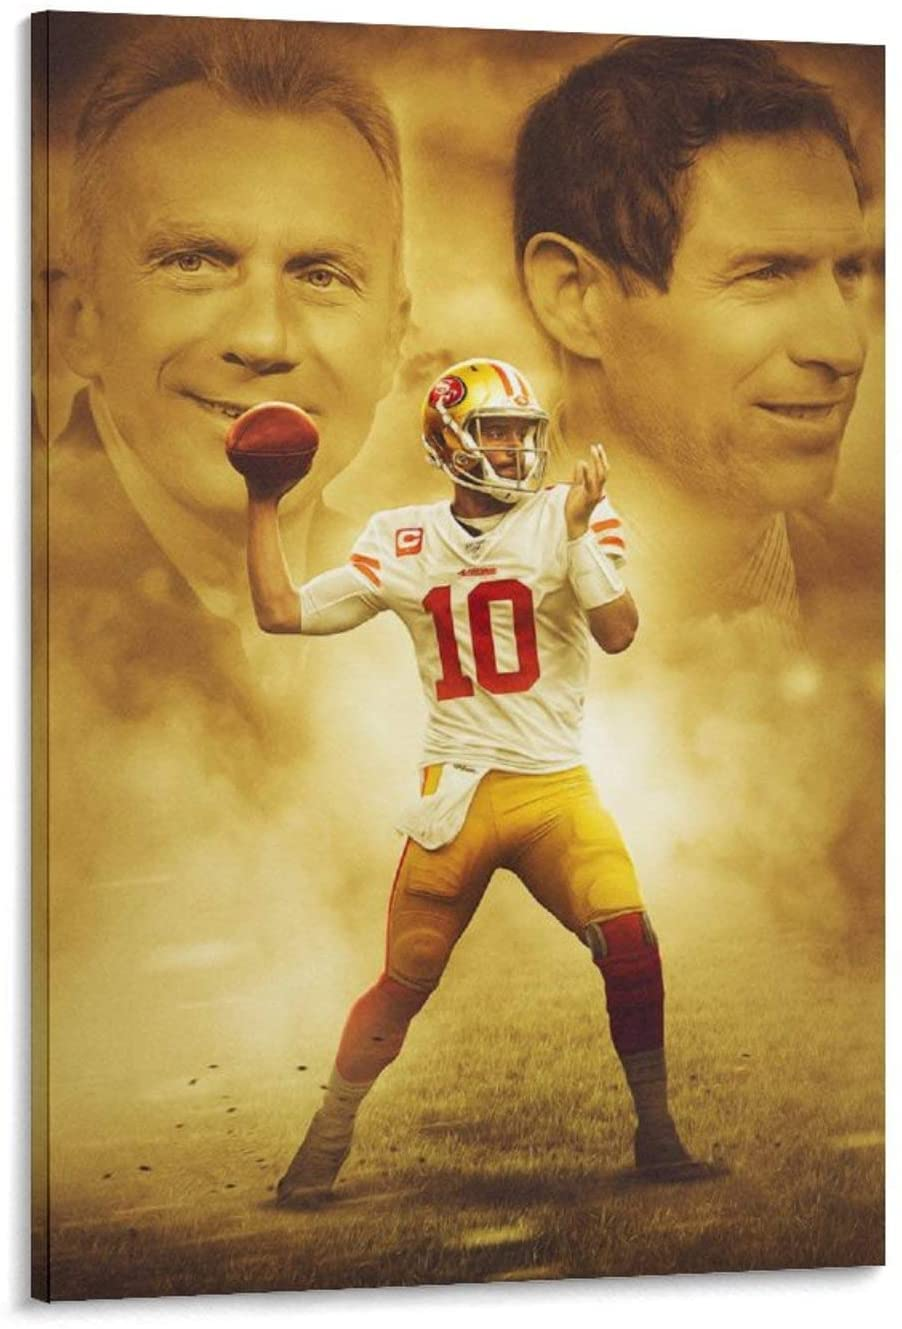 baoqing San Francisco 49ers - Jimmy Garoppolo Star Poster 3 Canvas Art Poster and Wall Art Picture Print Modern Family Bedroom Decor Posters 12x18inch(30x45cm)